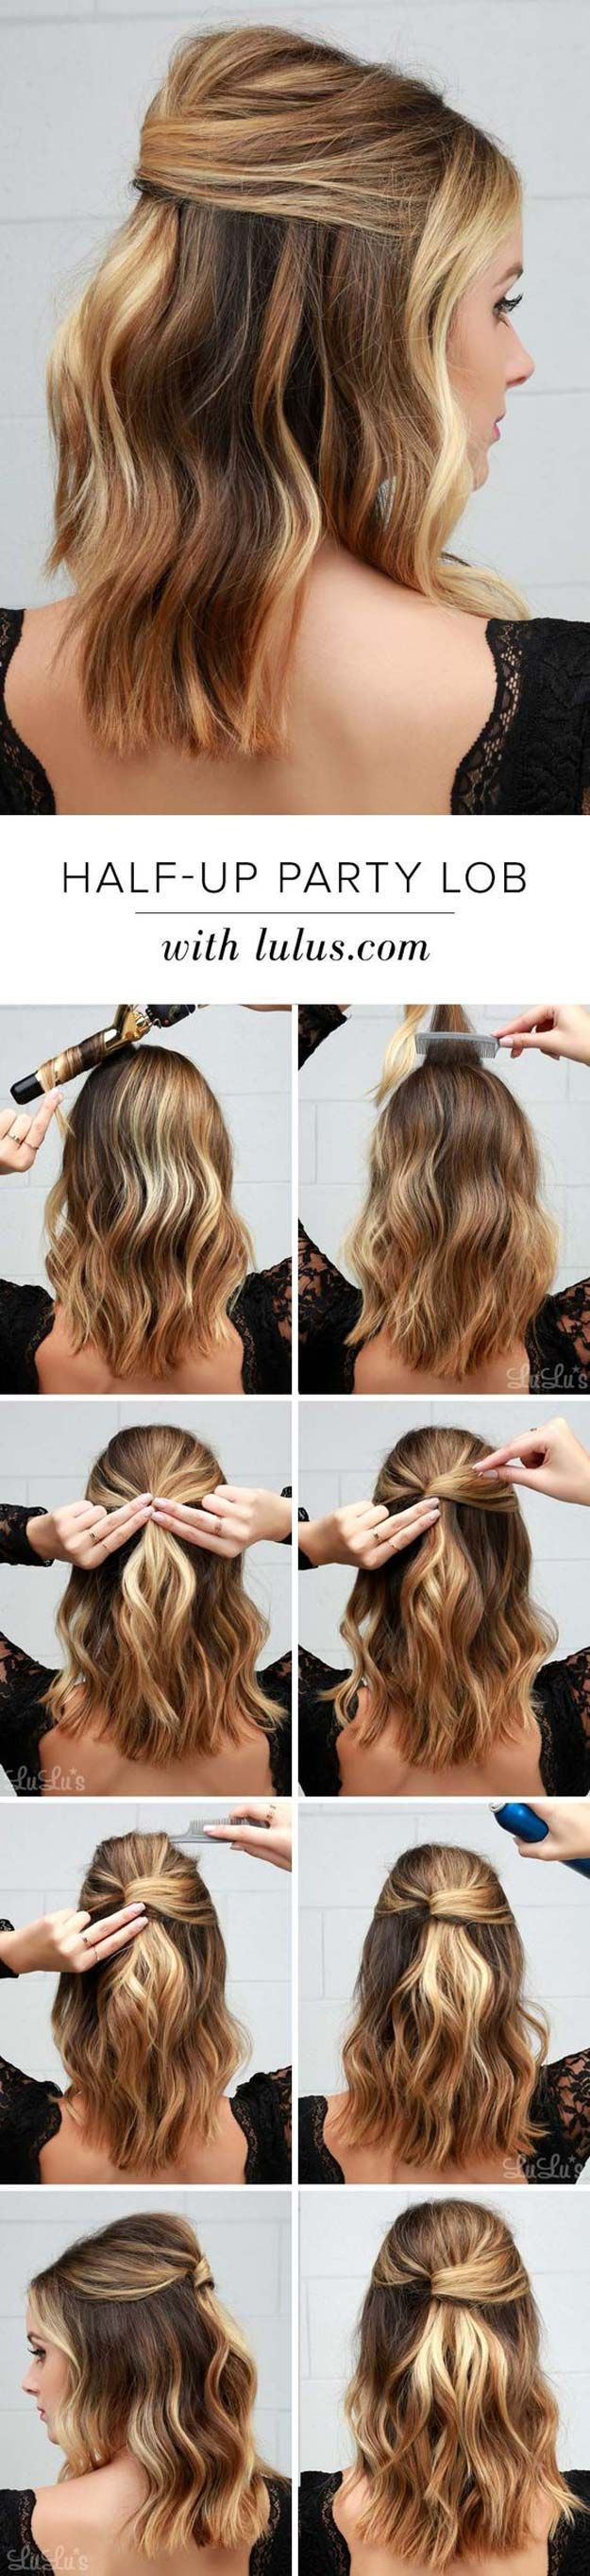 Groovy 1000 Ideas About Easy Work Hairstyles On Pinterest Work Hairstyles For Women Draintrainus